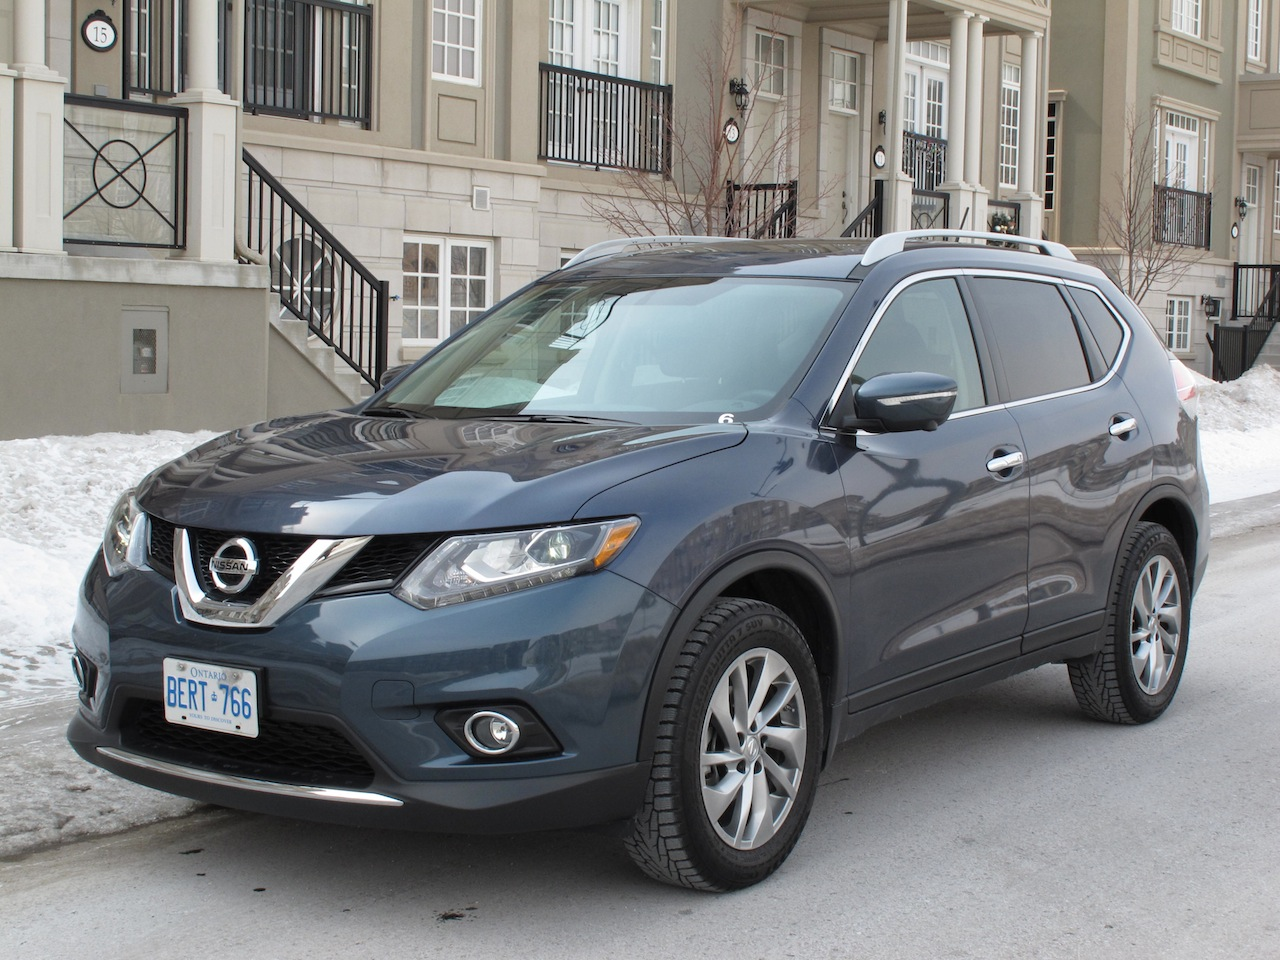 2014 nissan rogue sl awd photo gallery cars photos test drives and reviews canadian auto. Black Bedroom Furniture Sets. Home Design Ideas